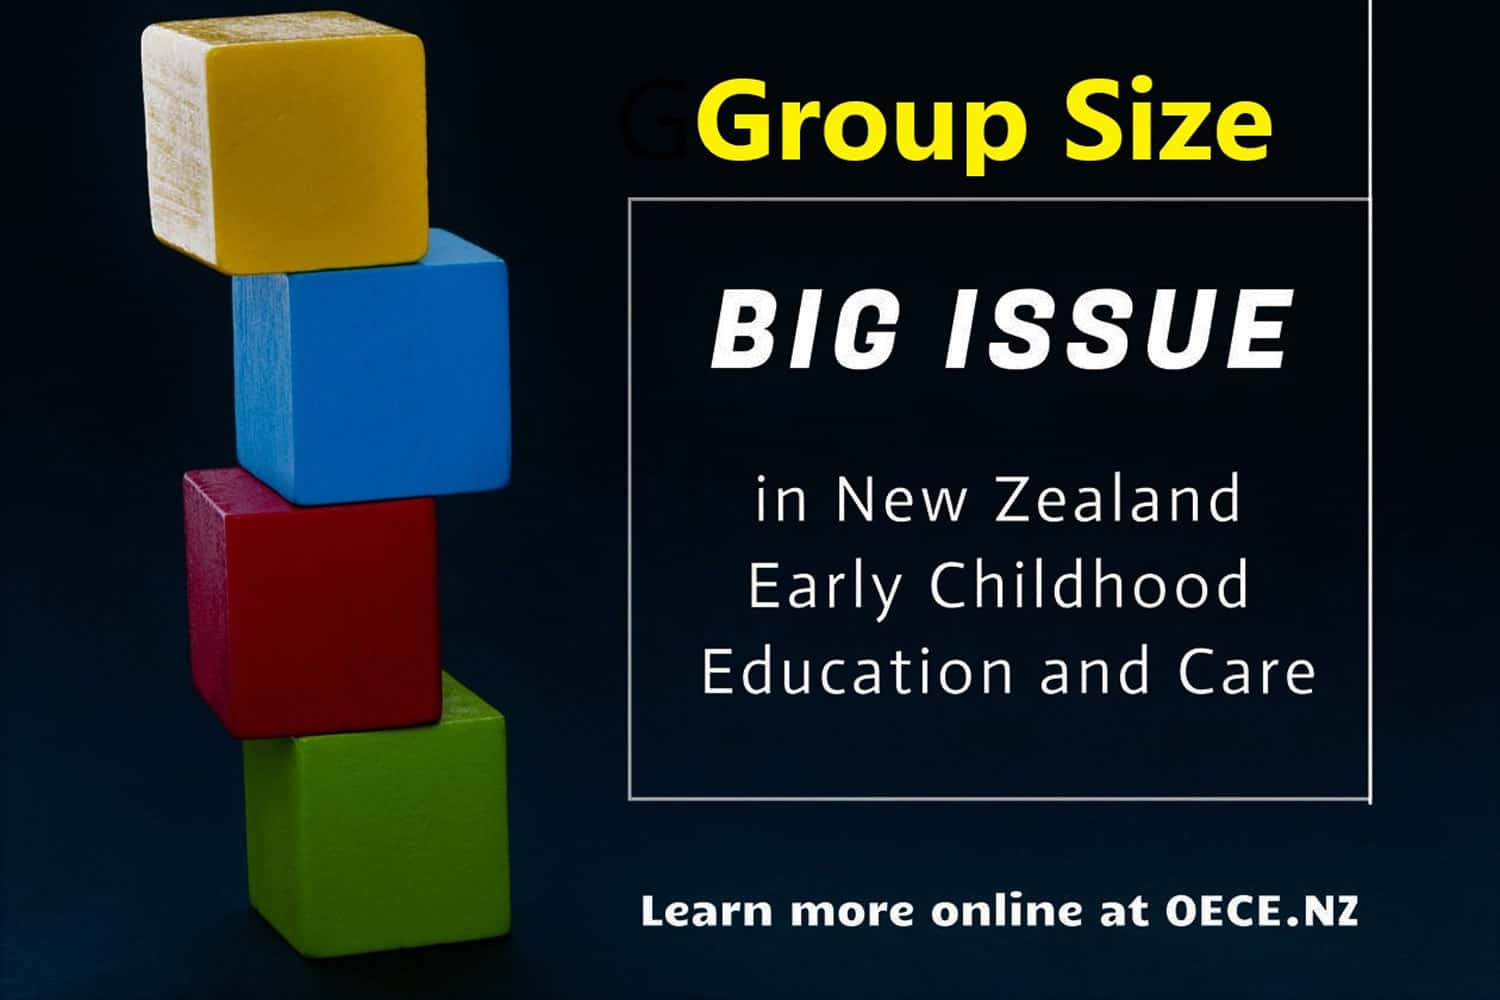 Group Size is a big issue